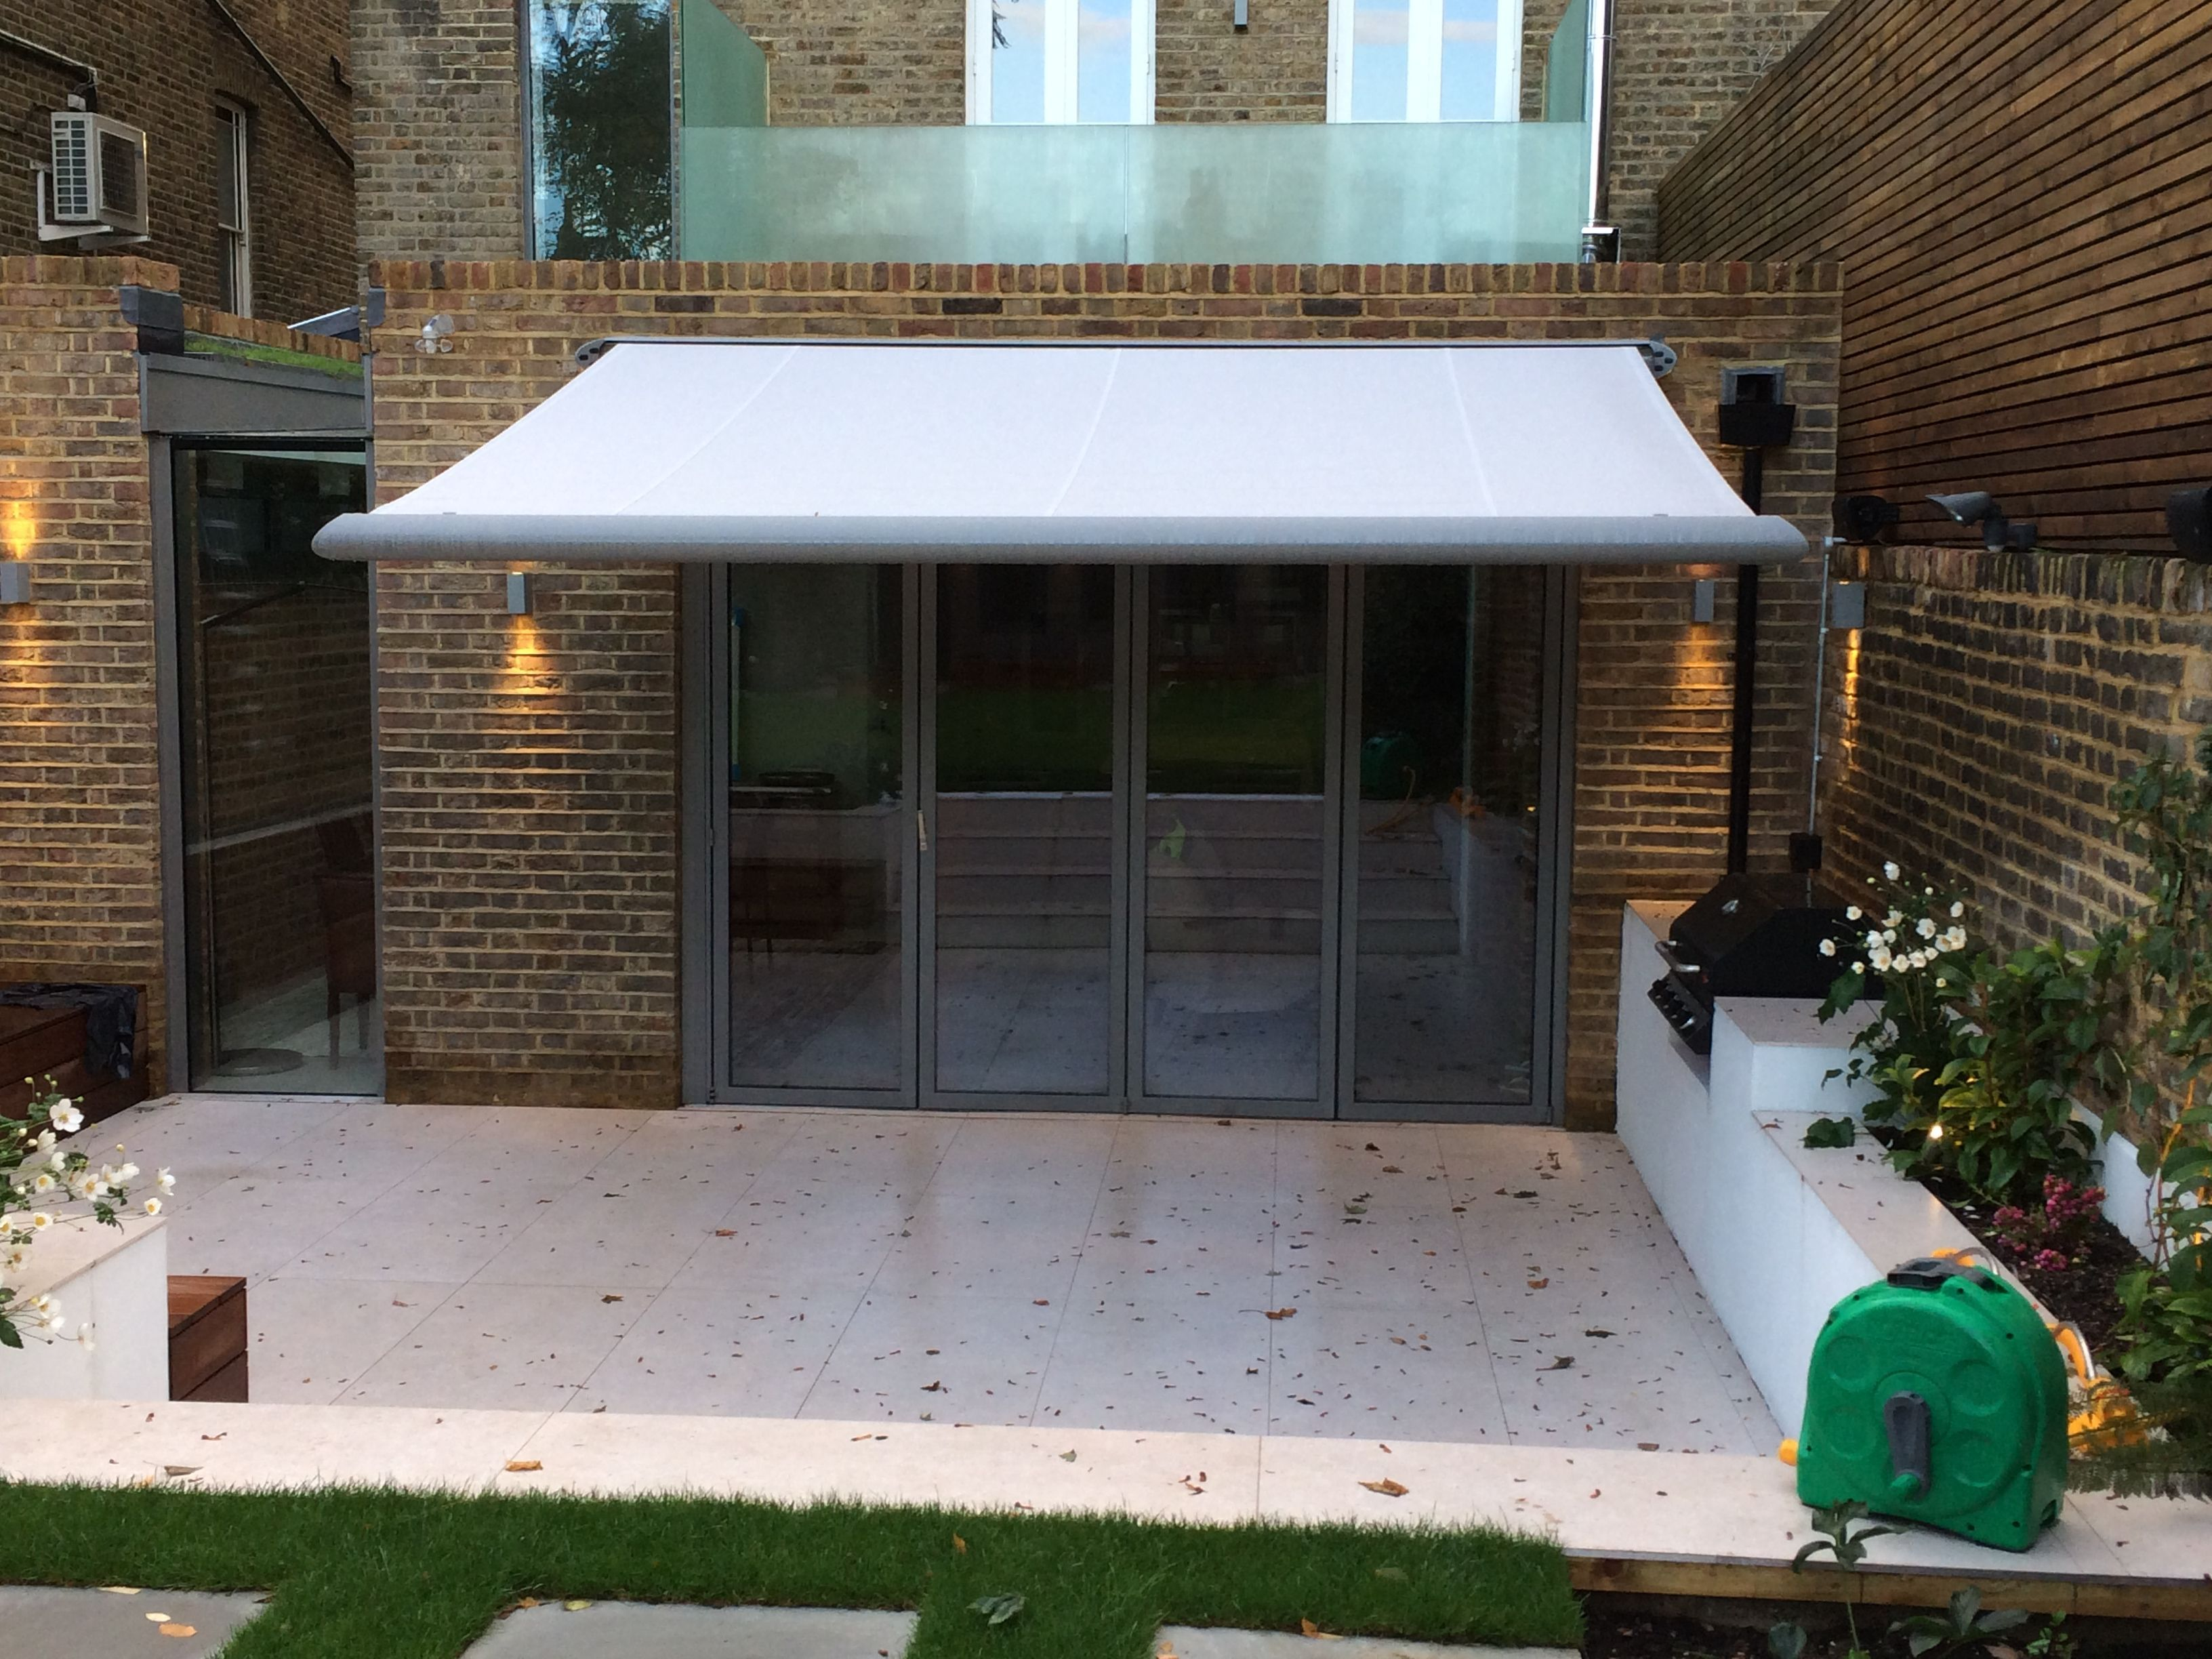 Zenara Patio Awning By Beardsblinds Co Uk Sheerverticalblinds